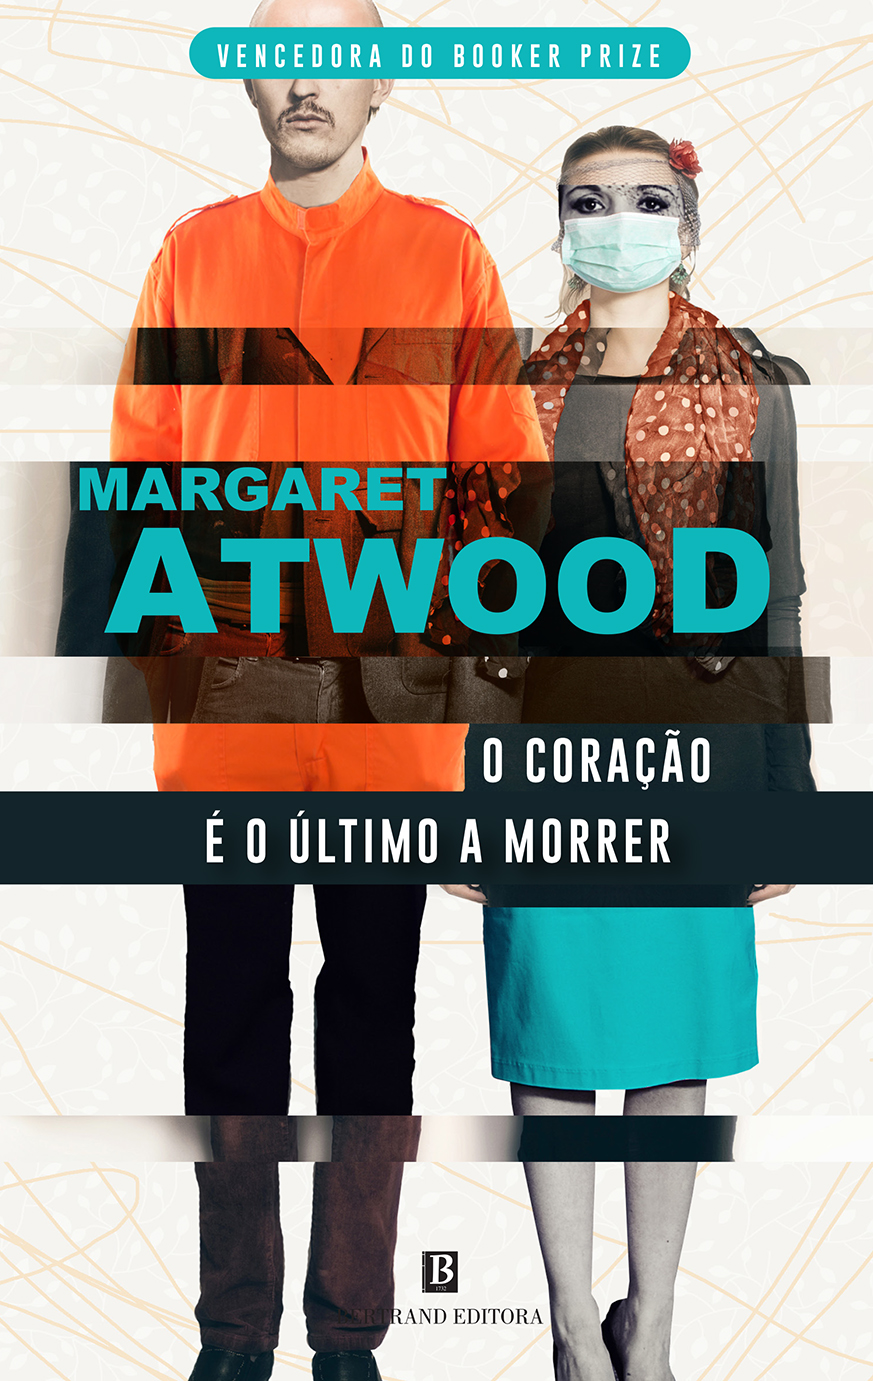 Atwood